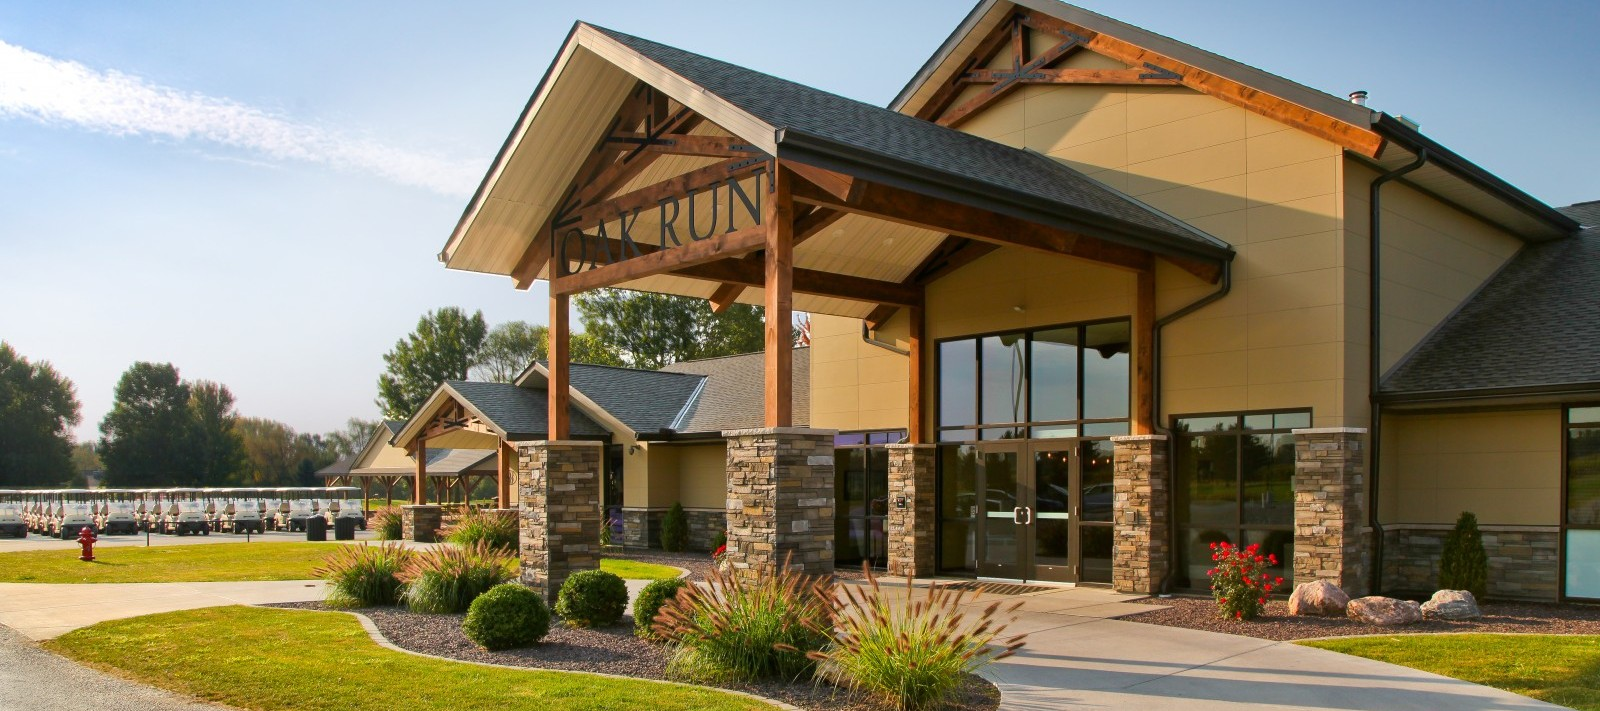 Oak Run Golf Course clubhouse entrance three-quarter view